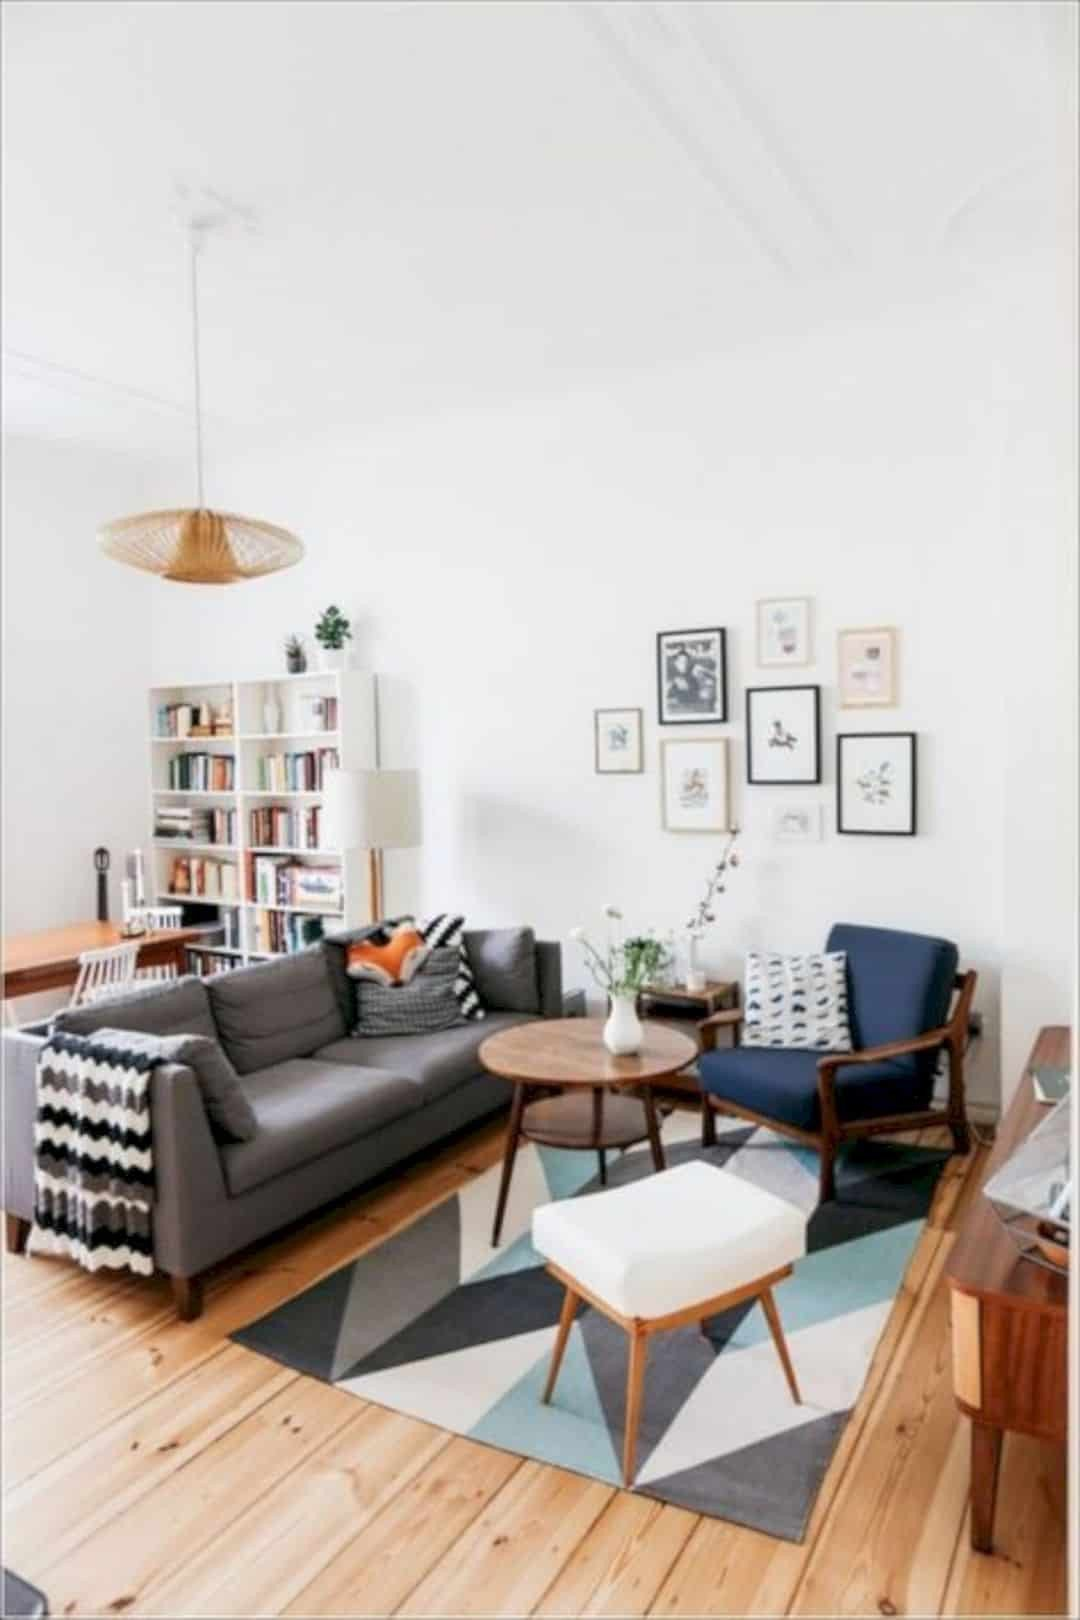 Living Room Furniture Ideas Best Of 17 Furniture Ideas for Small Living Room